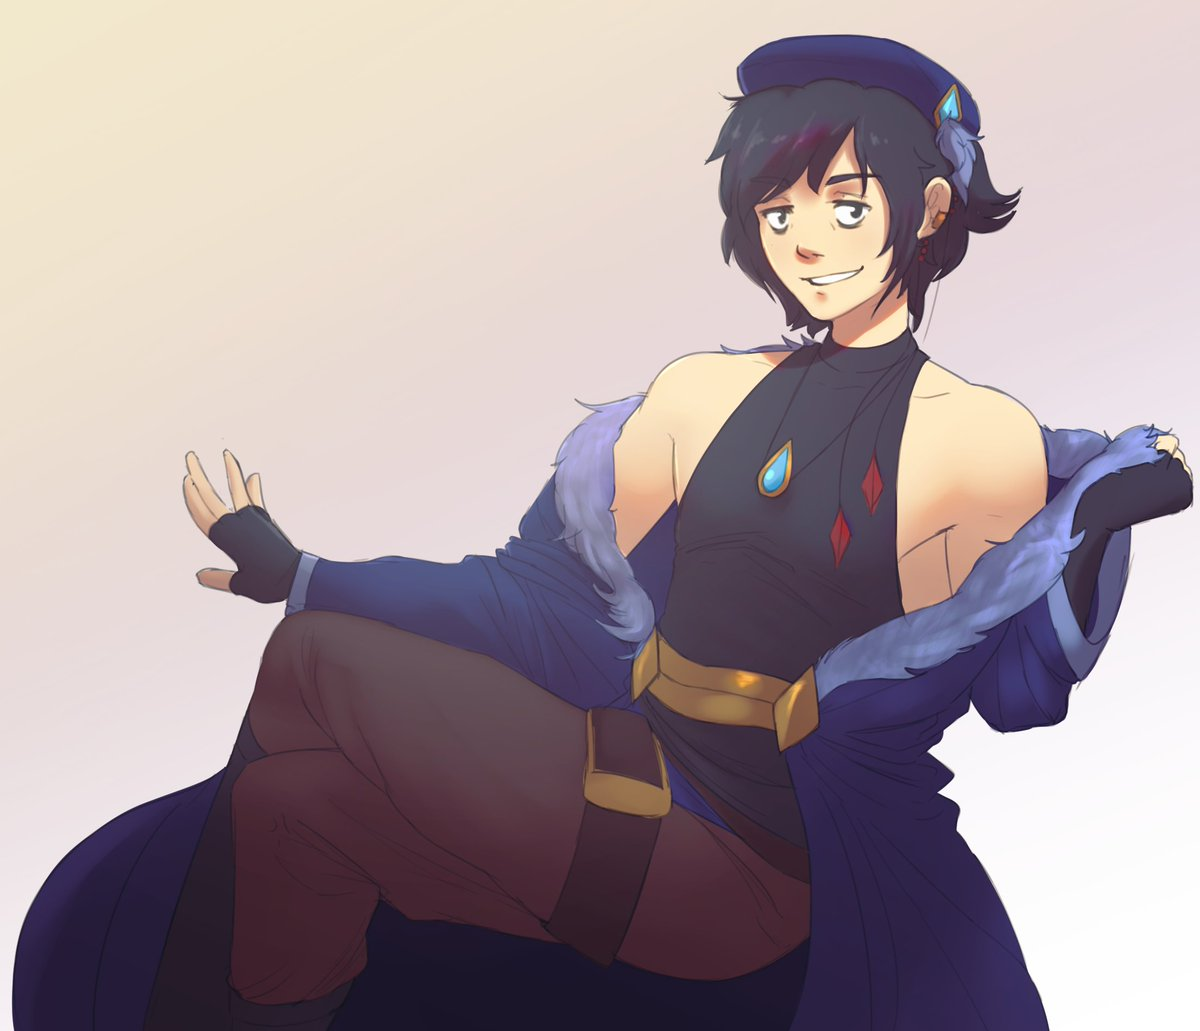 Look at this lovely image of my UTAU Indra drawn by @MisterPanncake I commissioned! Totally like go support them, Im like cry 💖💖😭😭😭